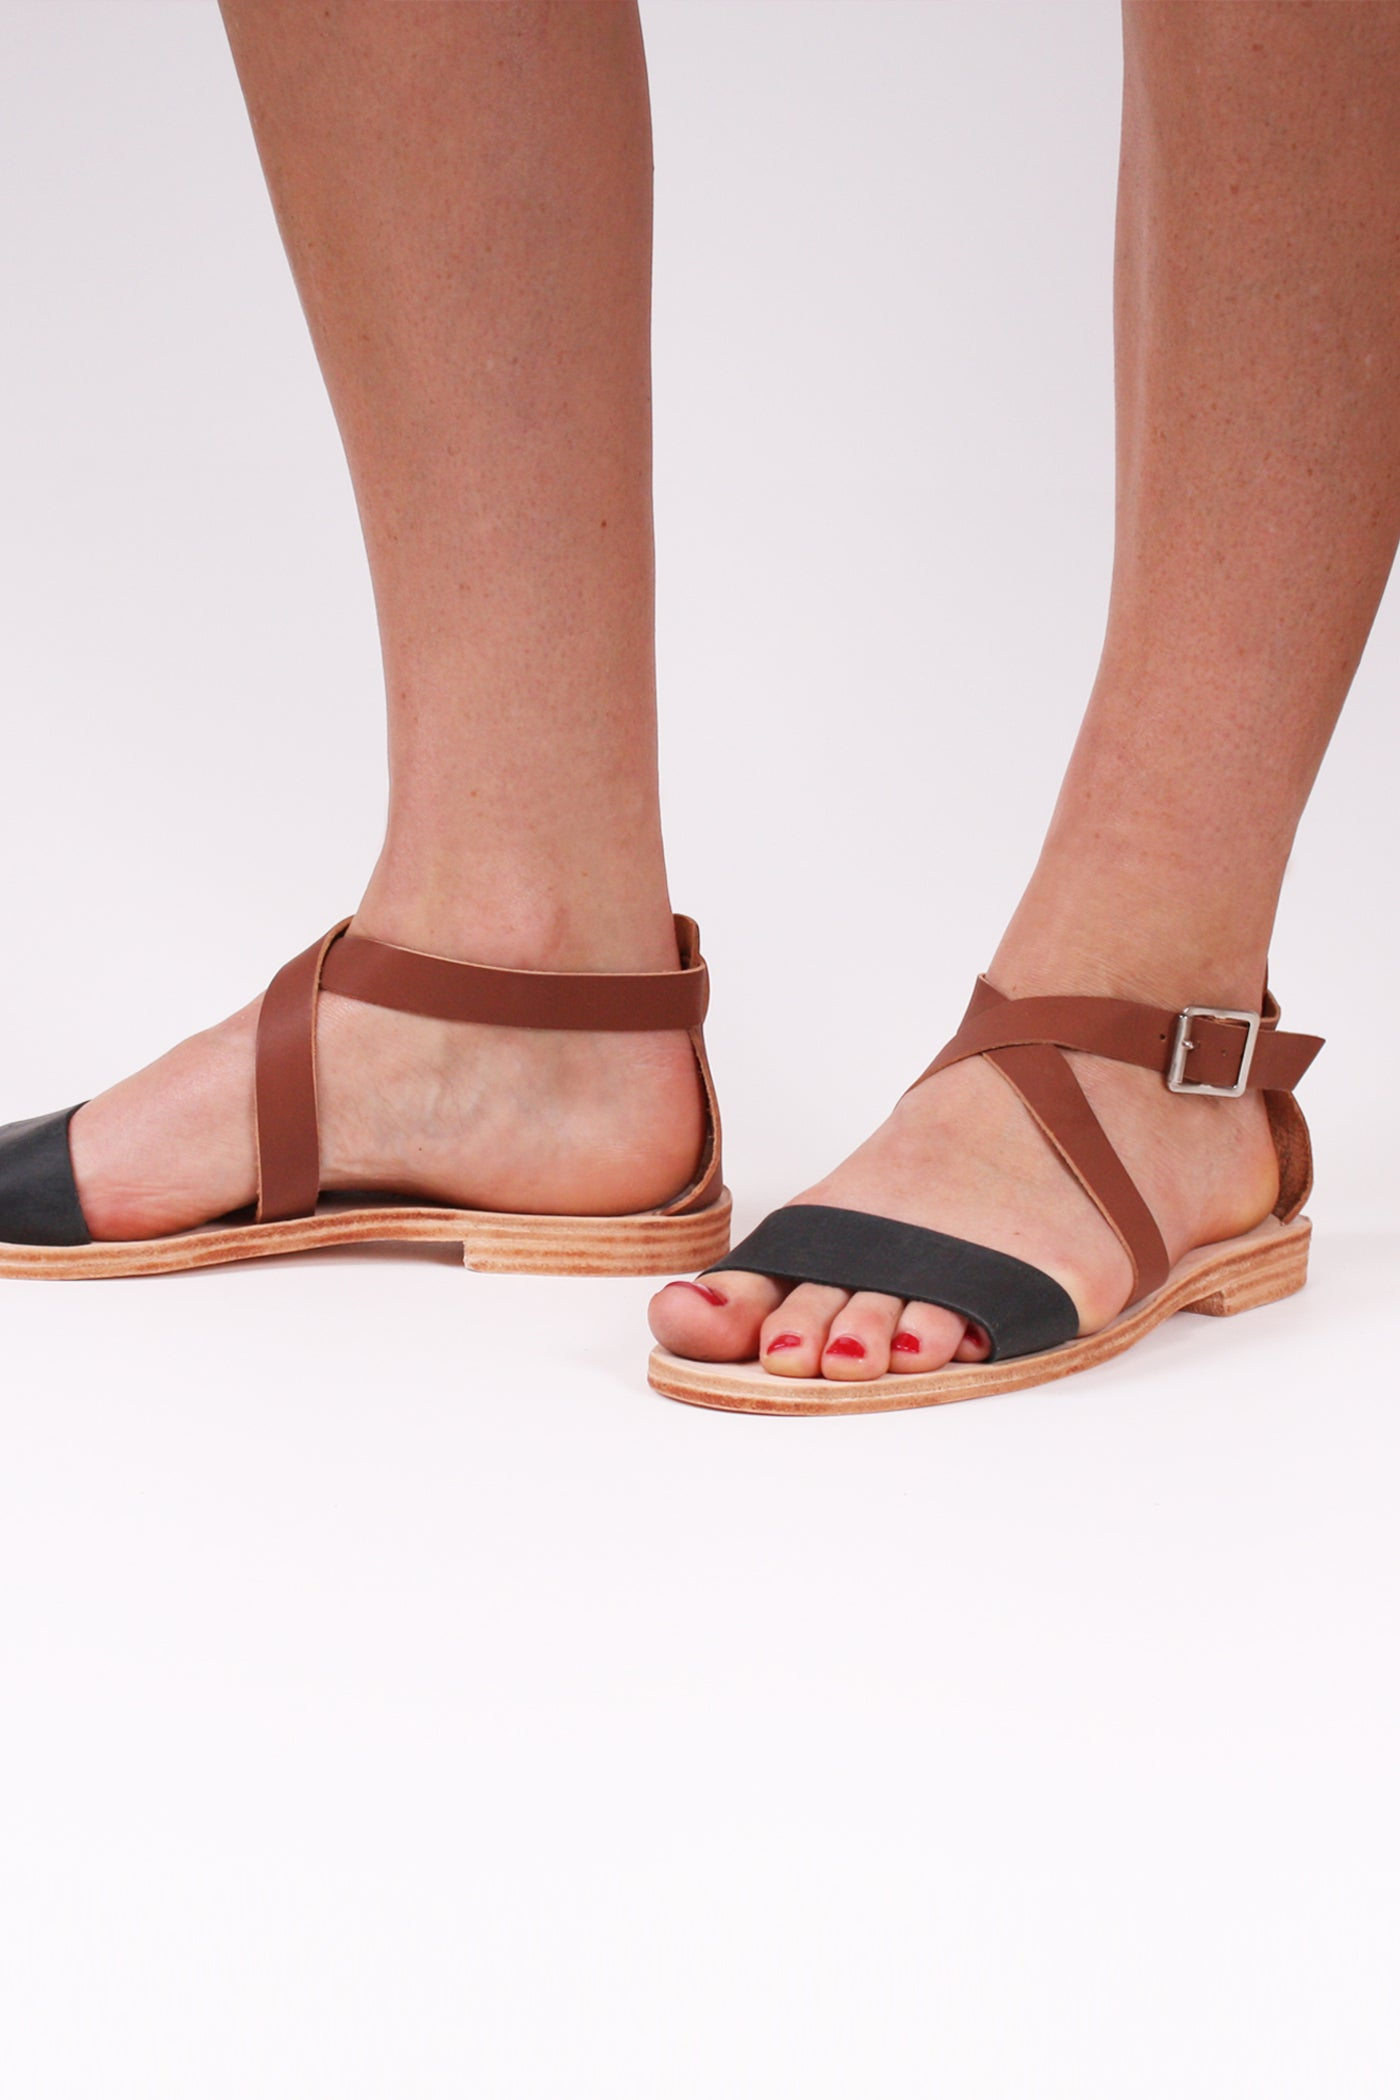 Goodie-Two-Shoes Holiday Sandals (sizes available: 7)